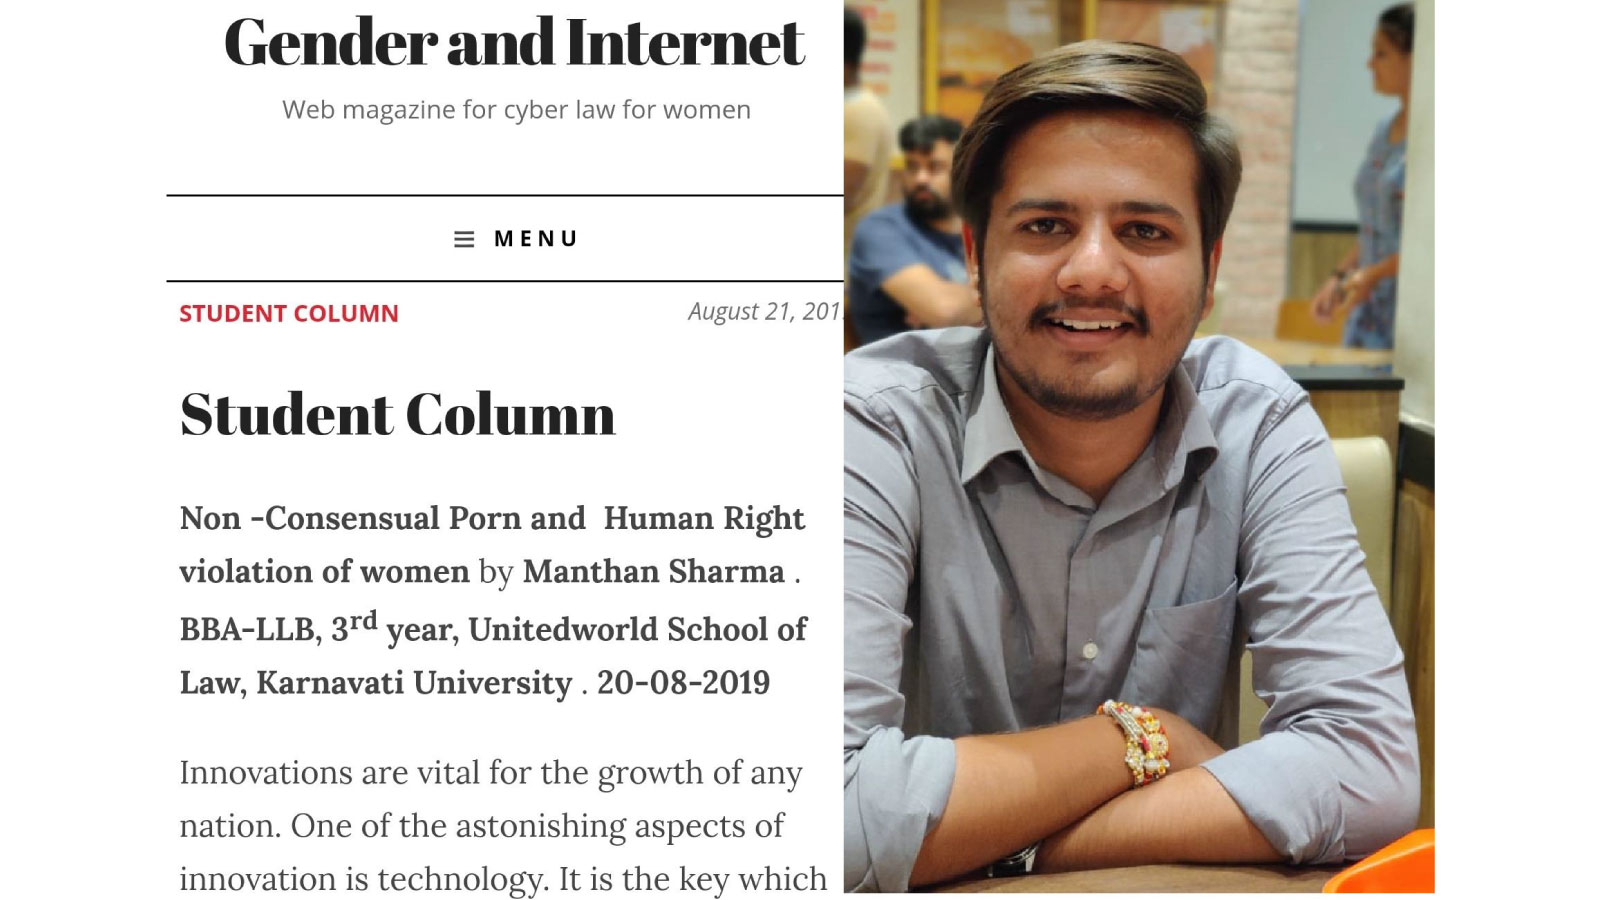 Manthan Sharma article published in web magazine Image